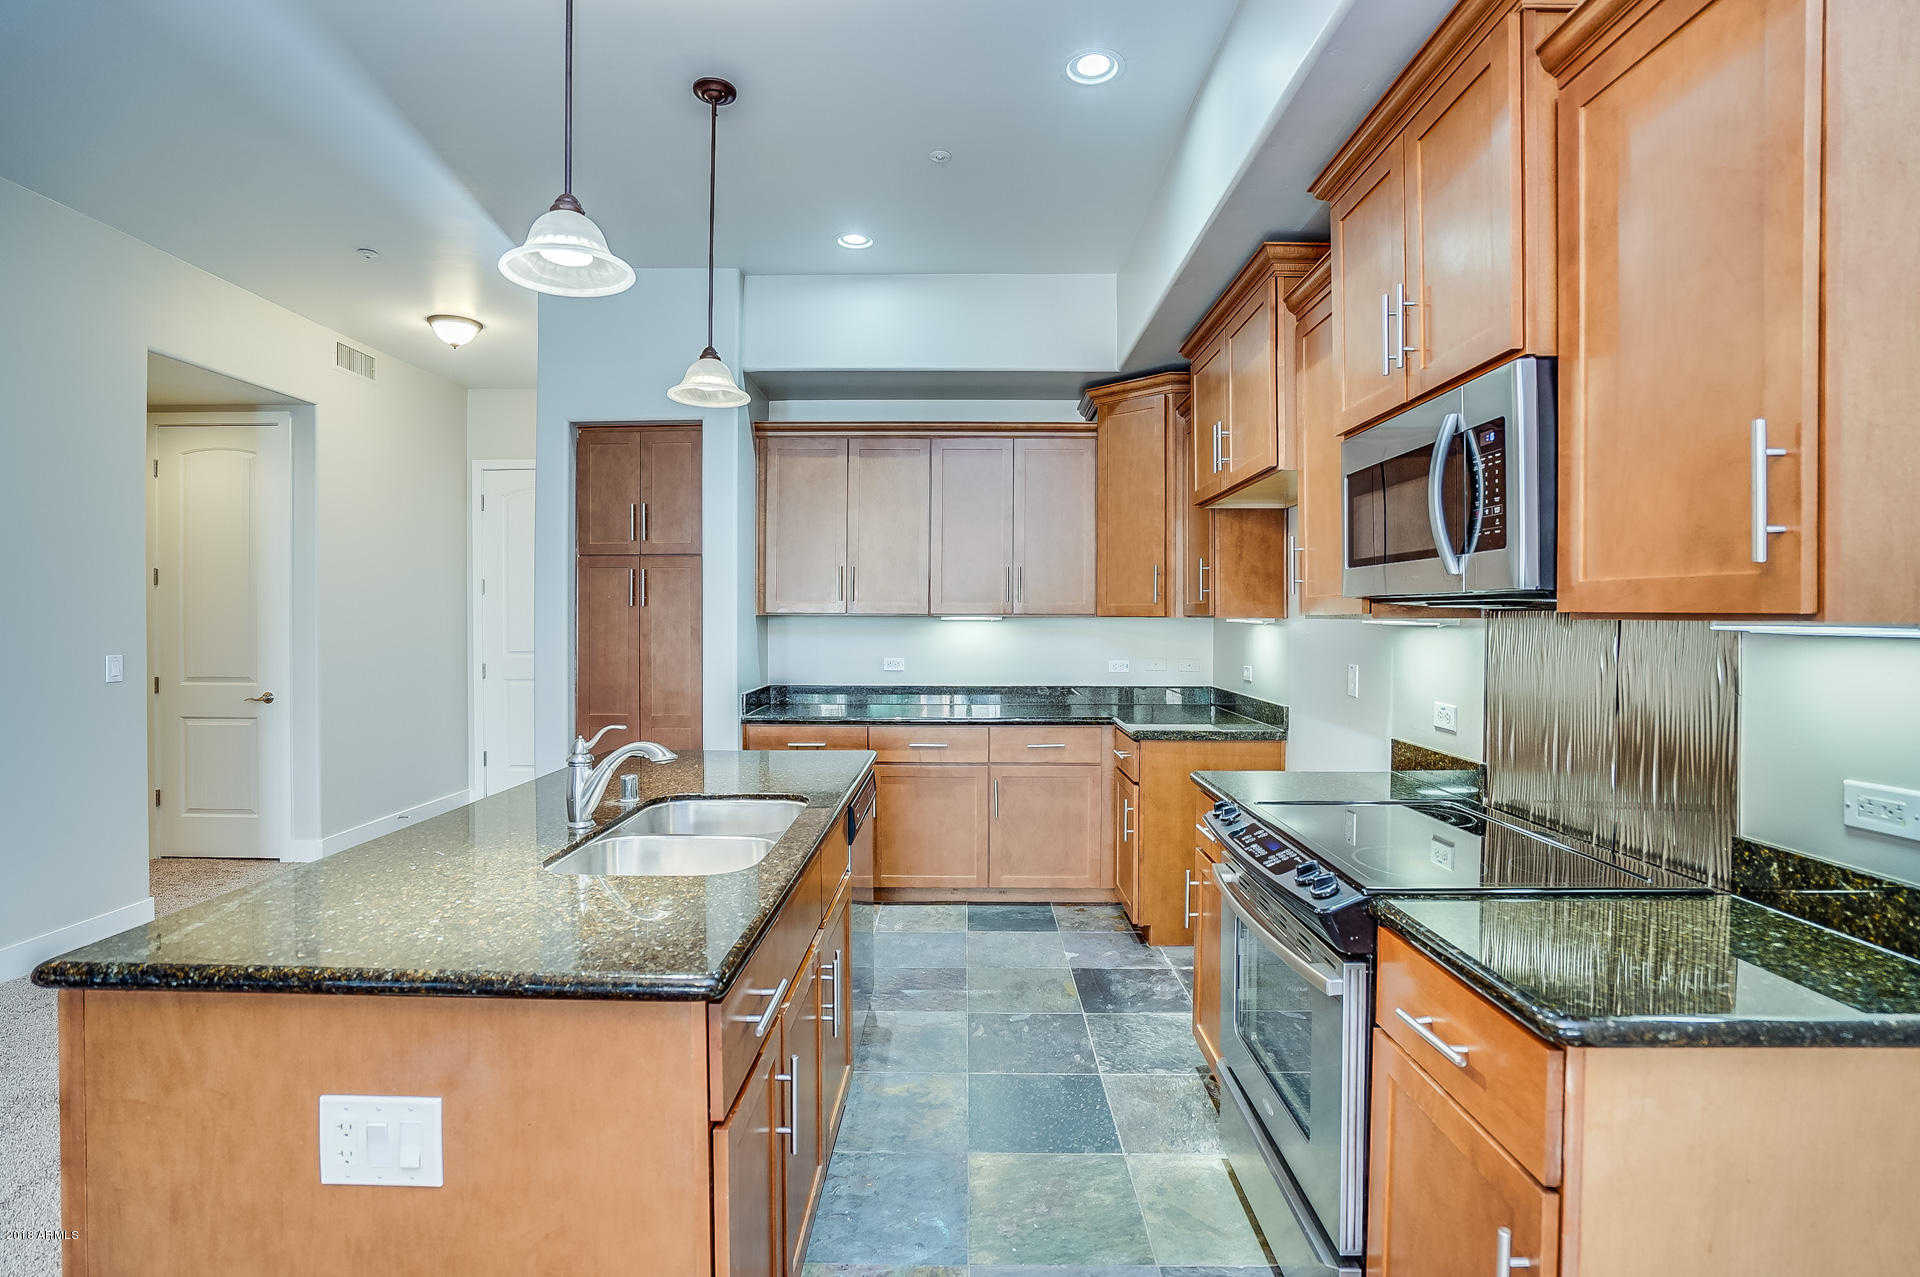 Club West Golf Homes for Sale - Marcella Lambert | Sonoran Sky Real ...